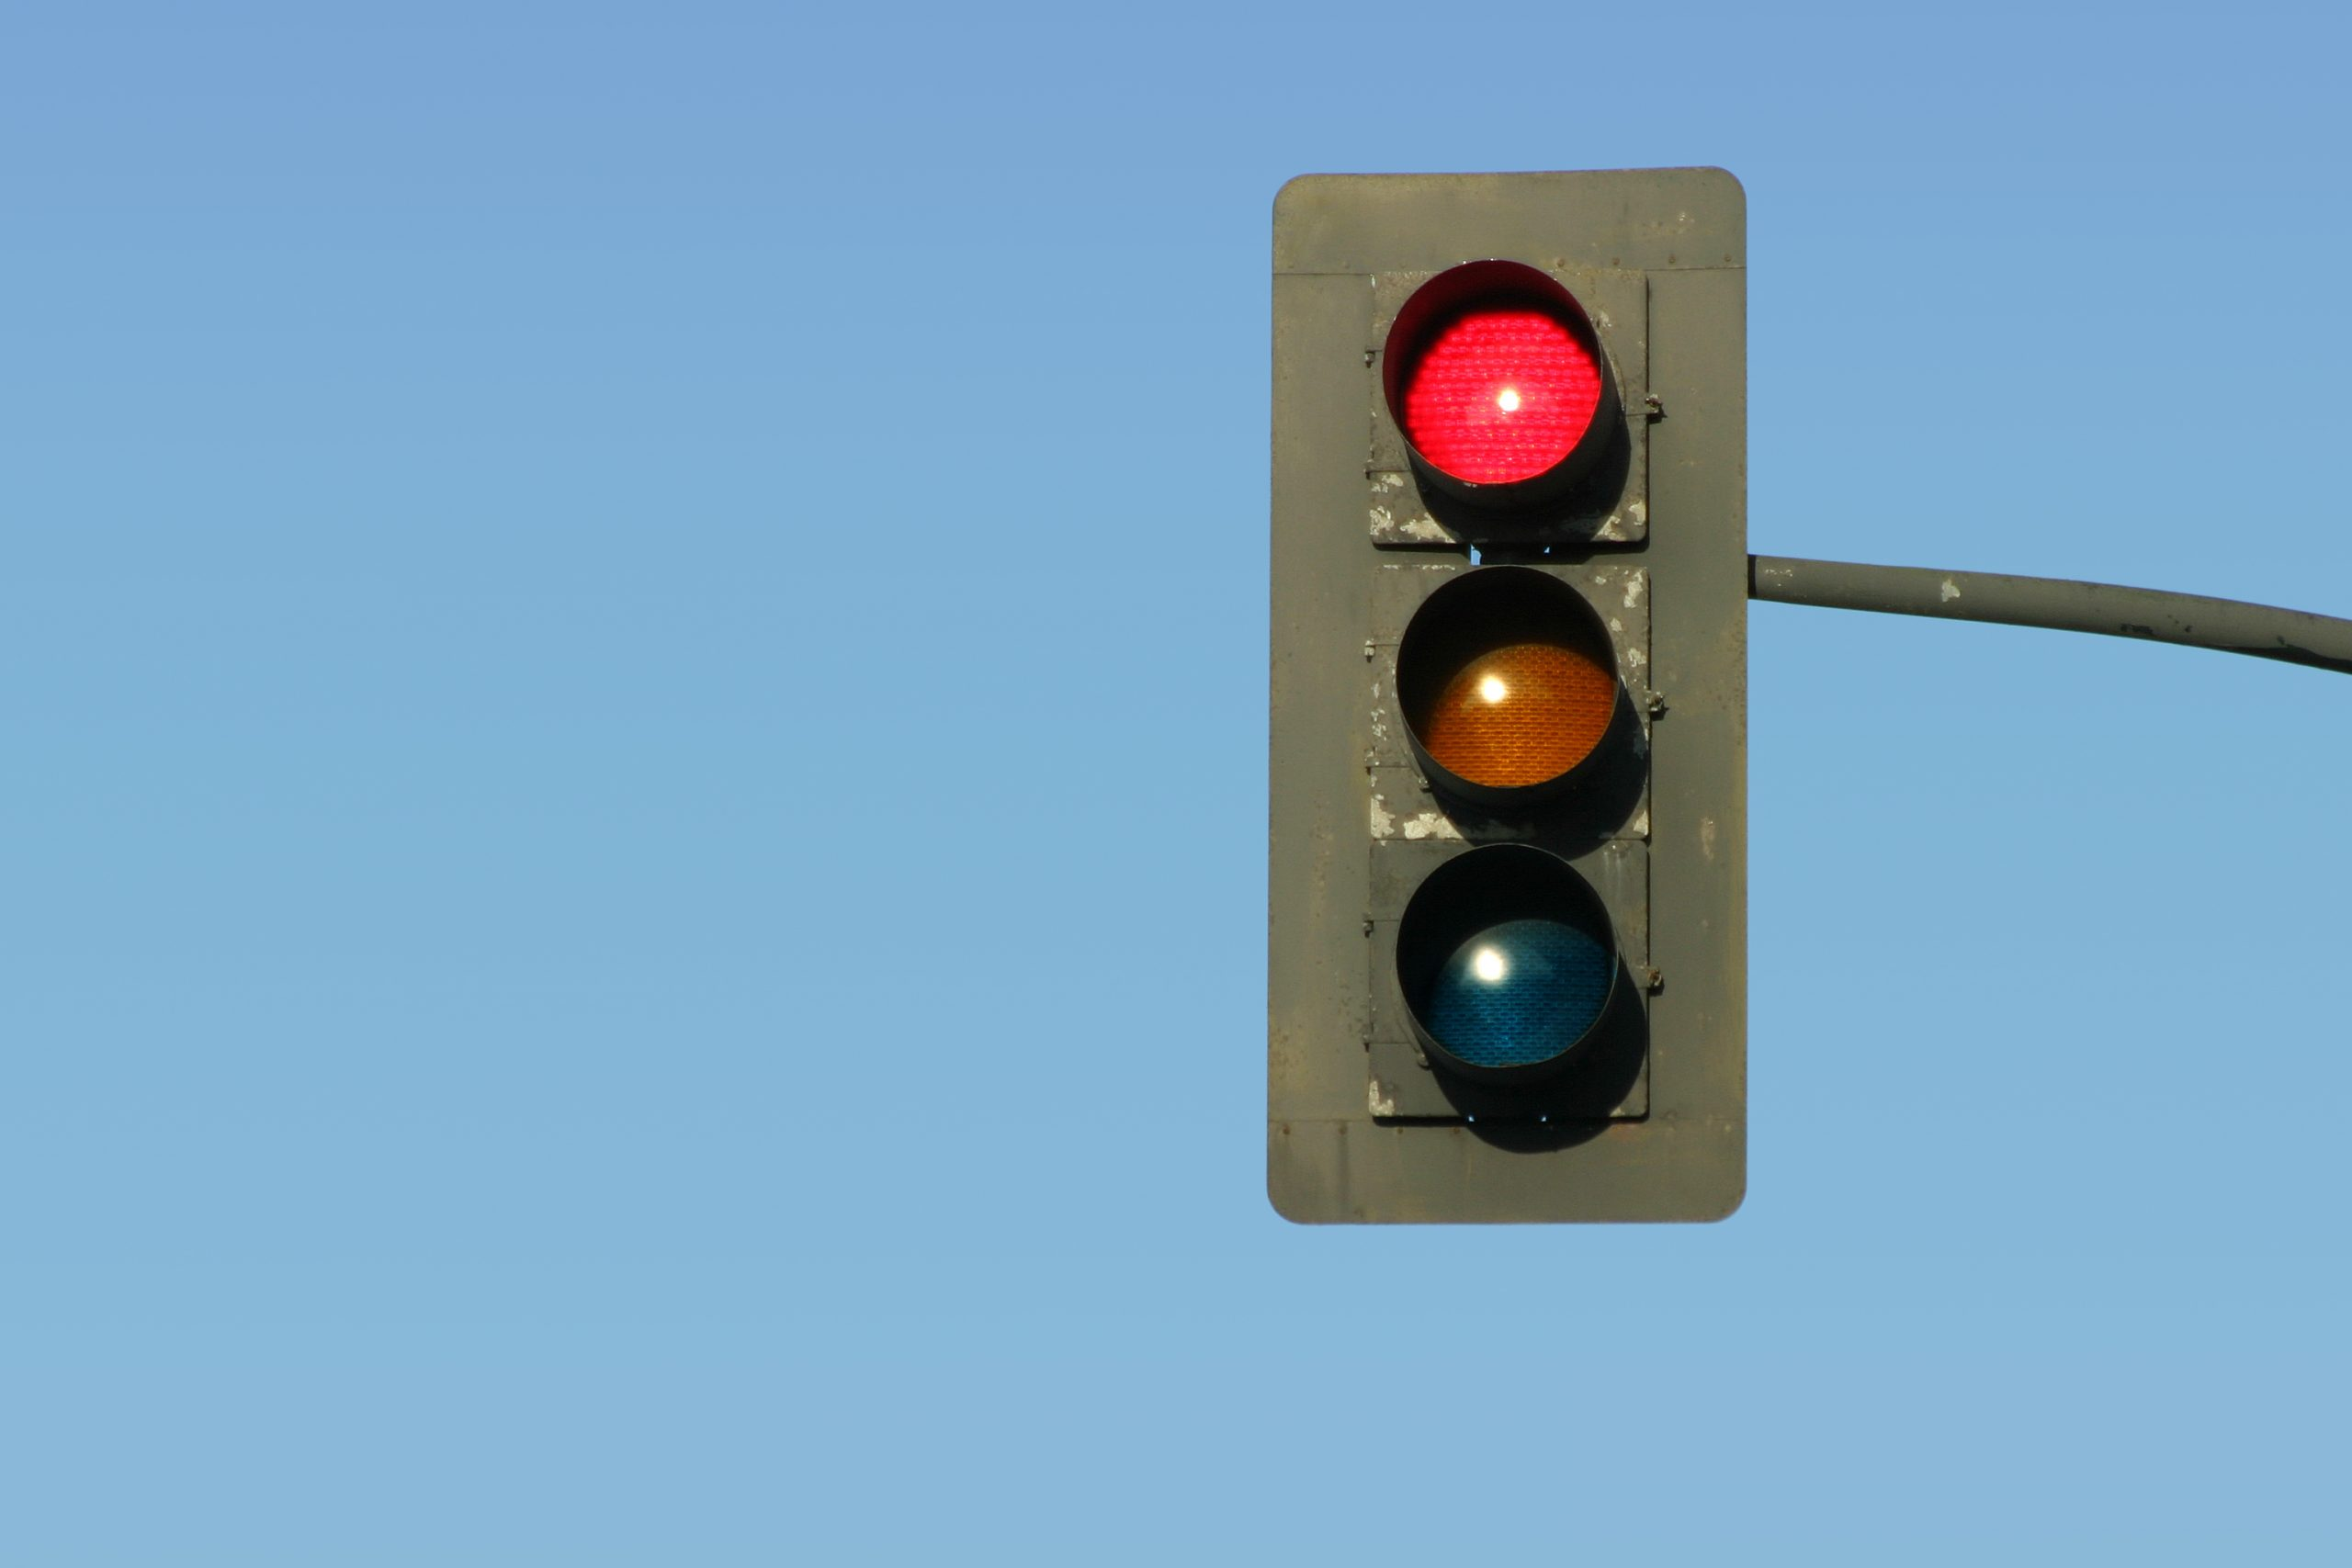 Picture of a red light